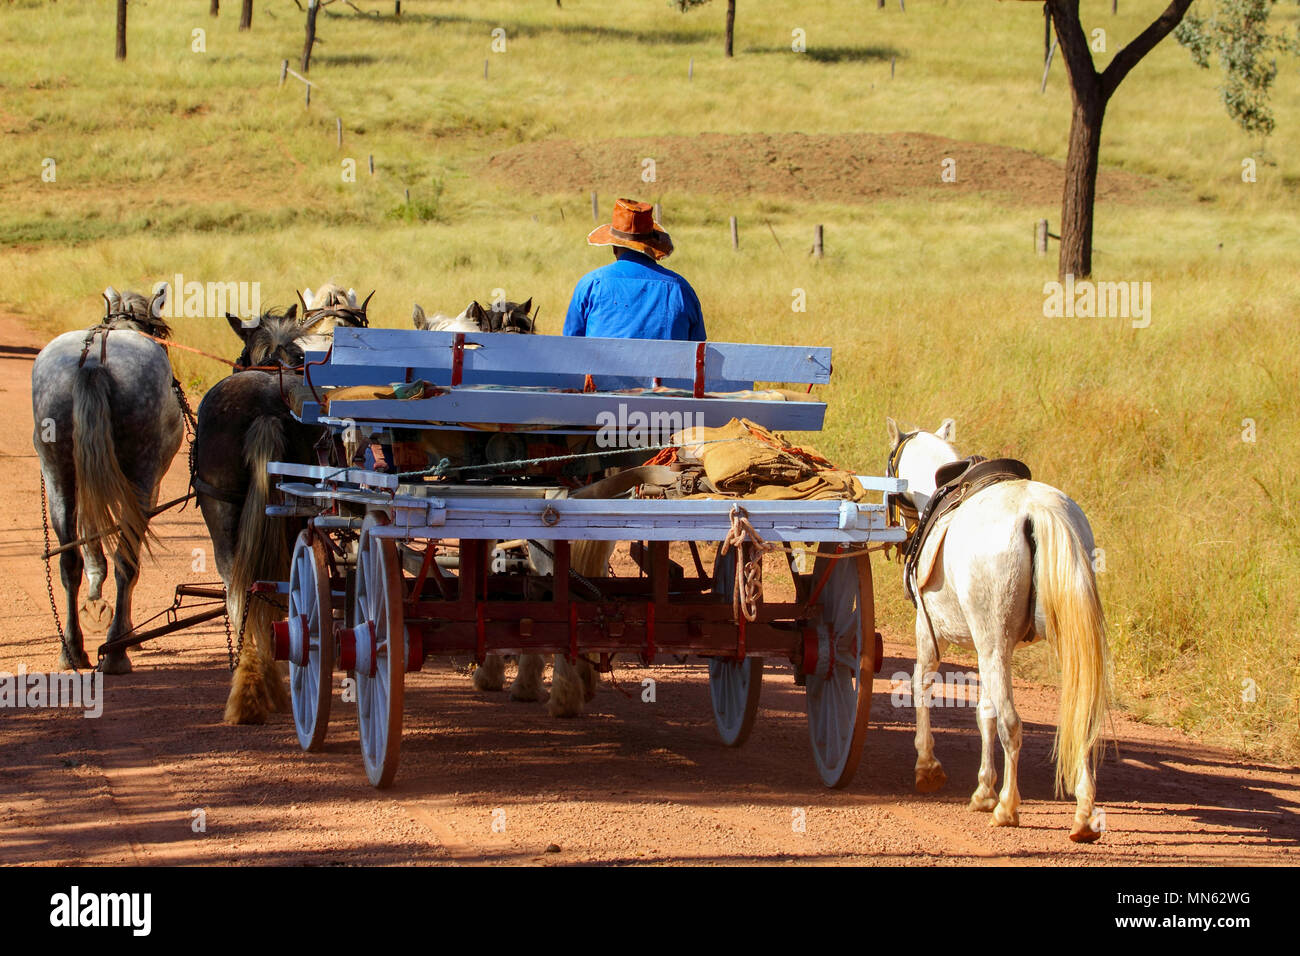 Draught horse team pulling a wagon on country road. - Stock Image